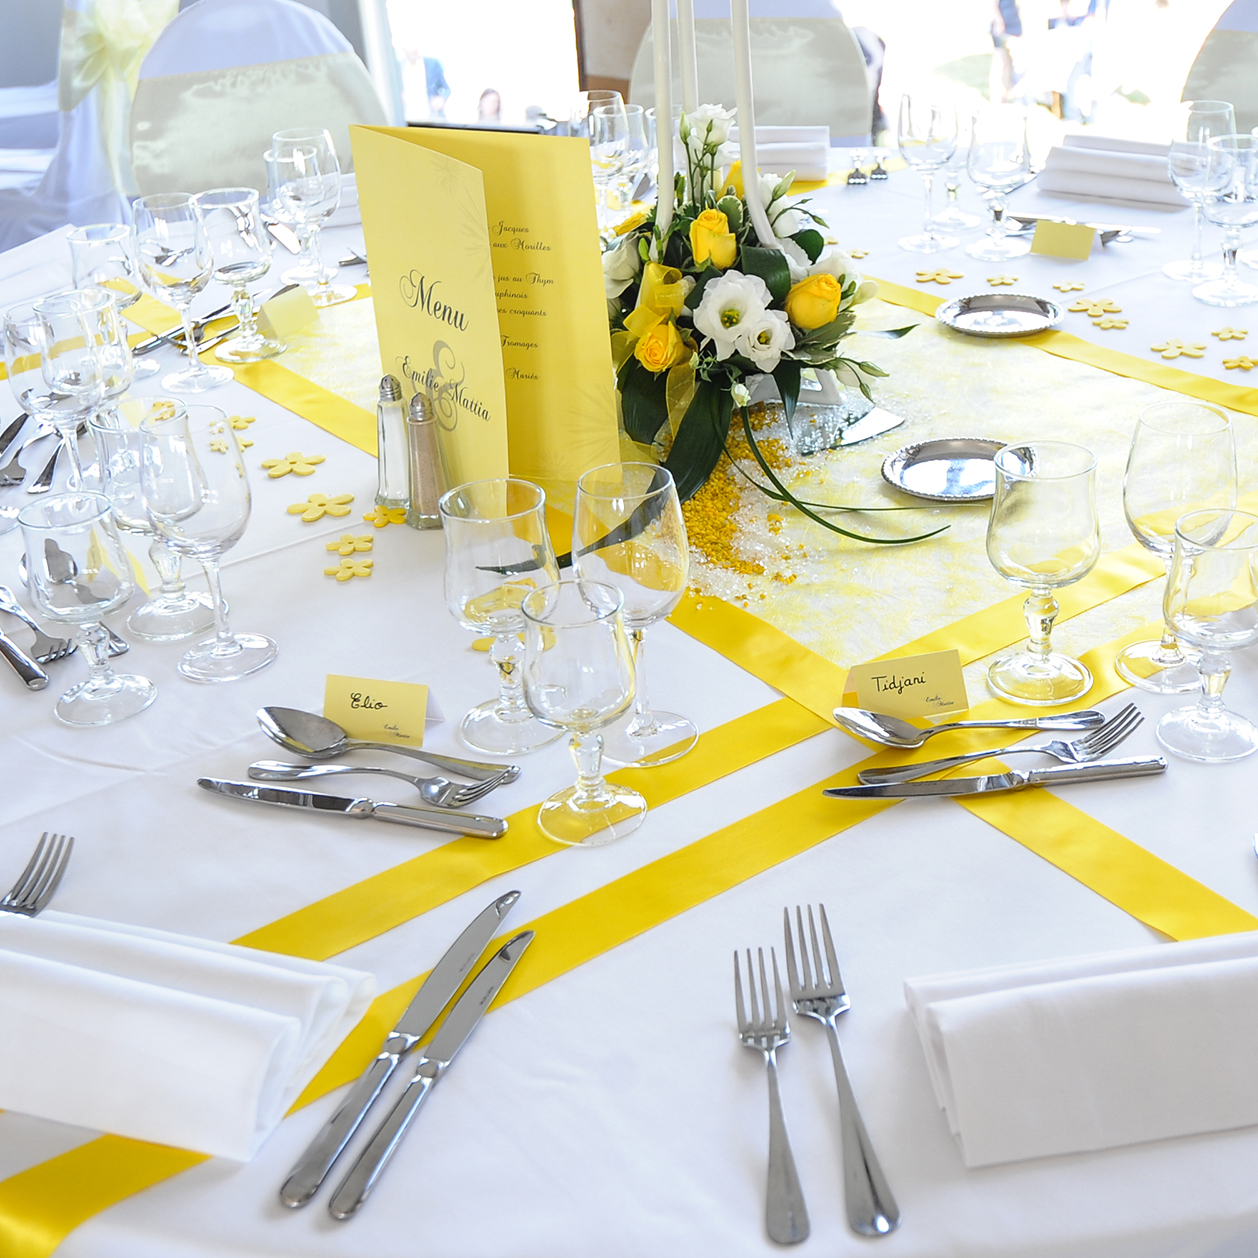 Faire part mariage de faire party for Decoration jaune